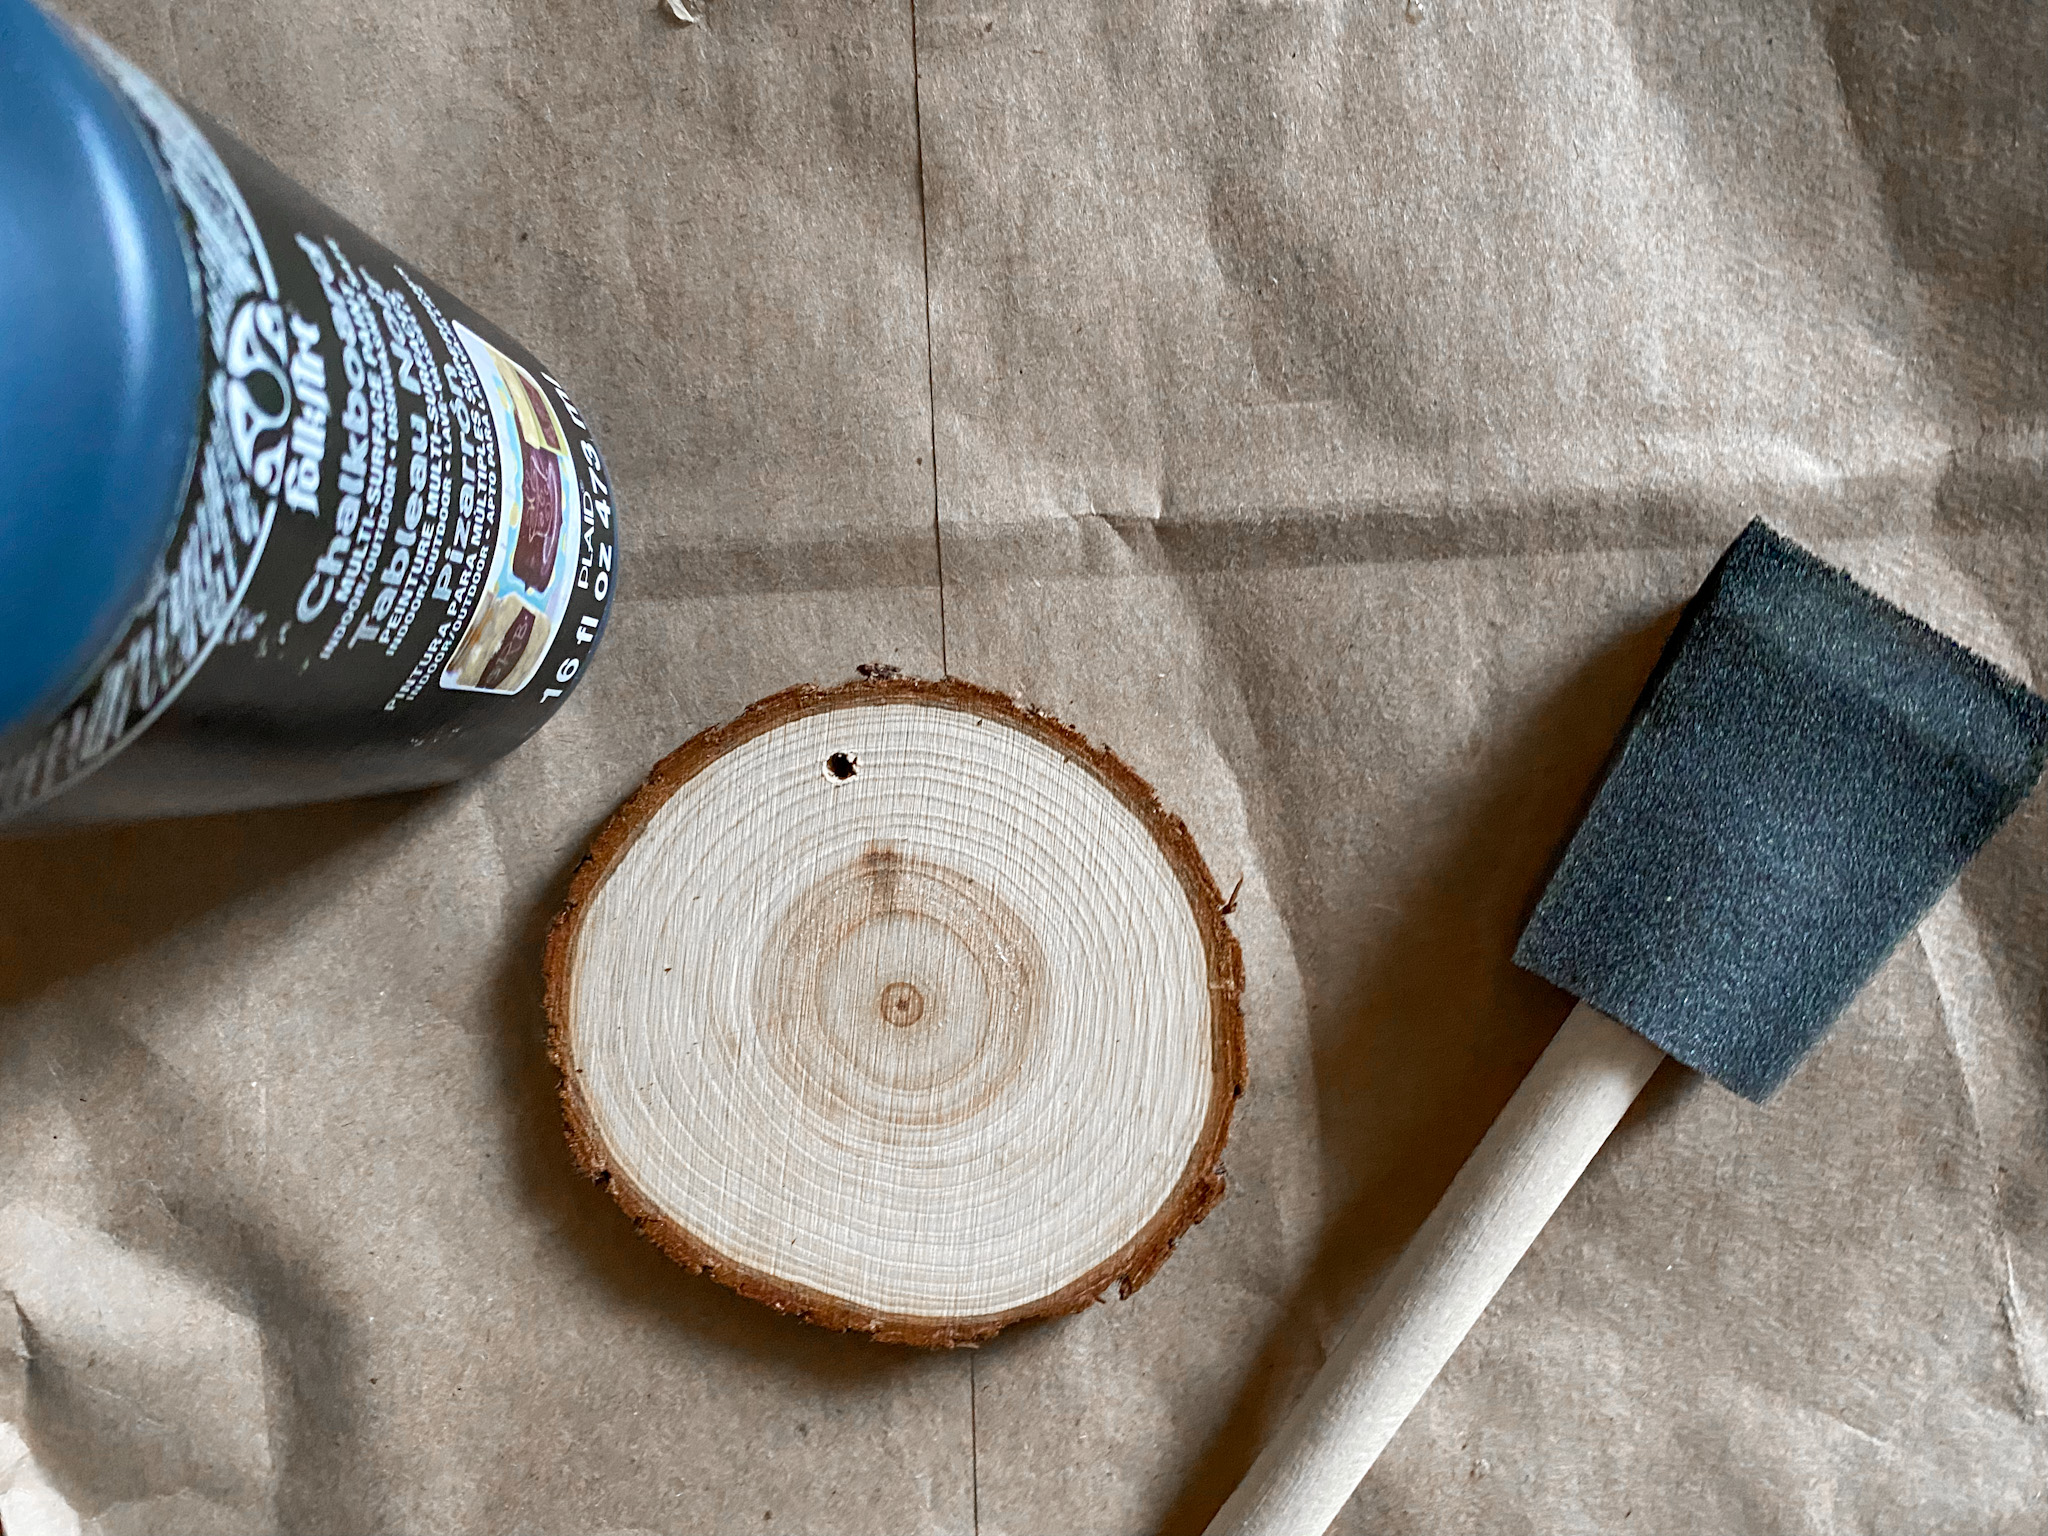 Wood slice with chalkboard paint on a brown paper